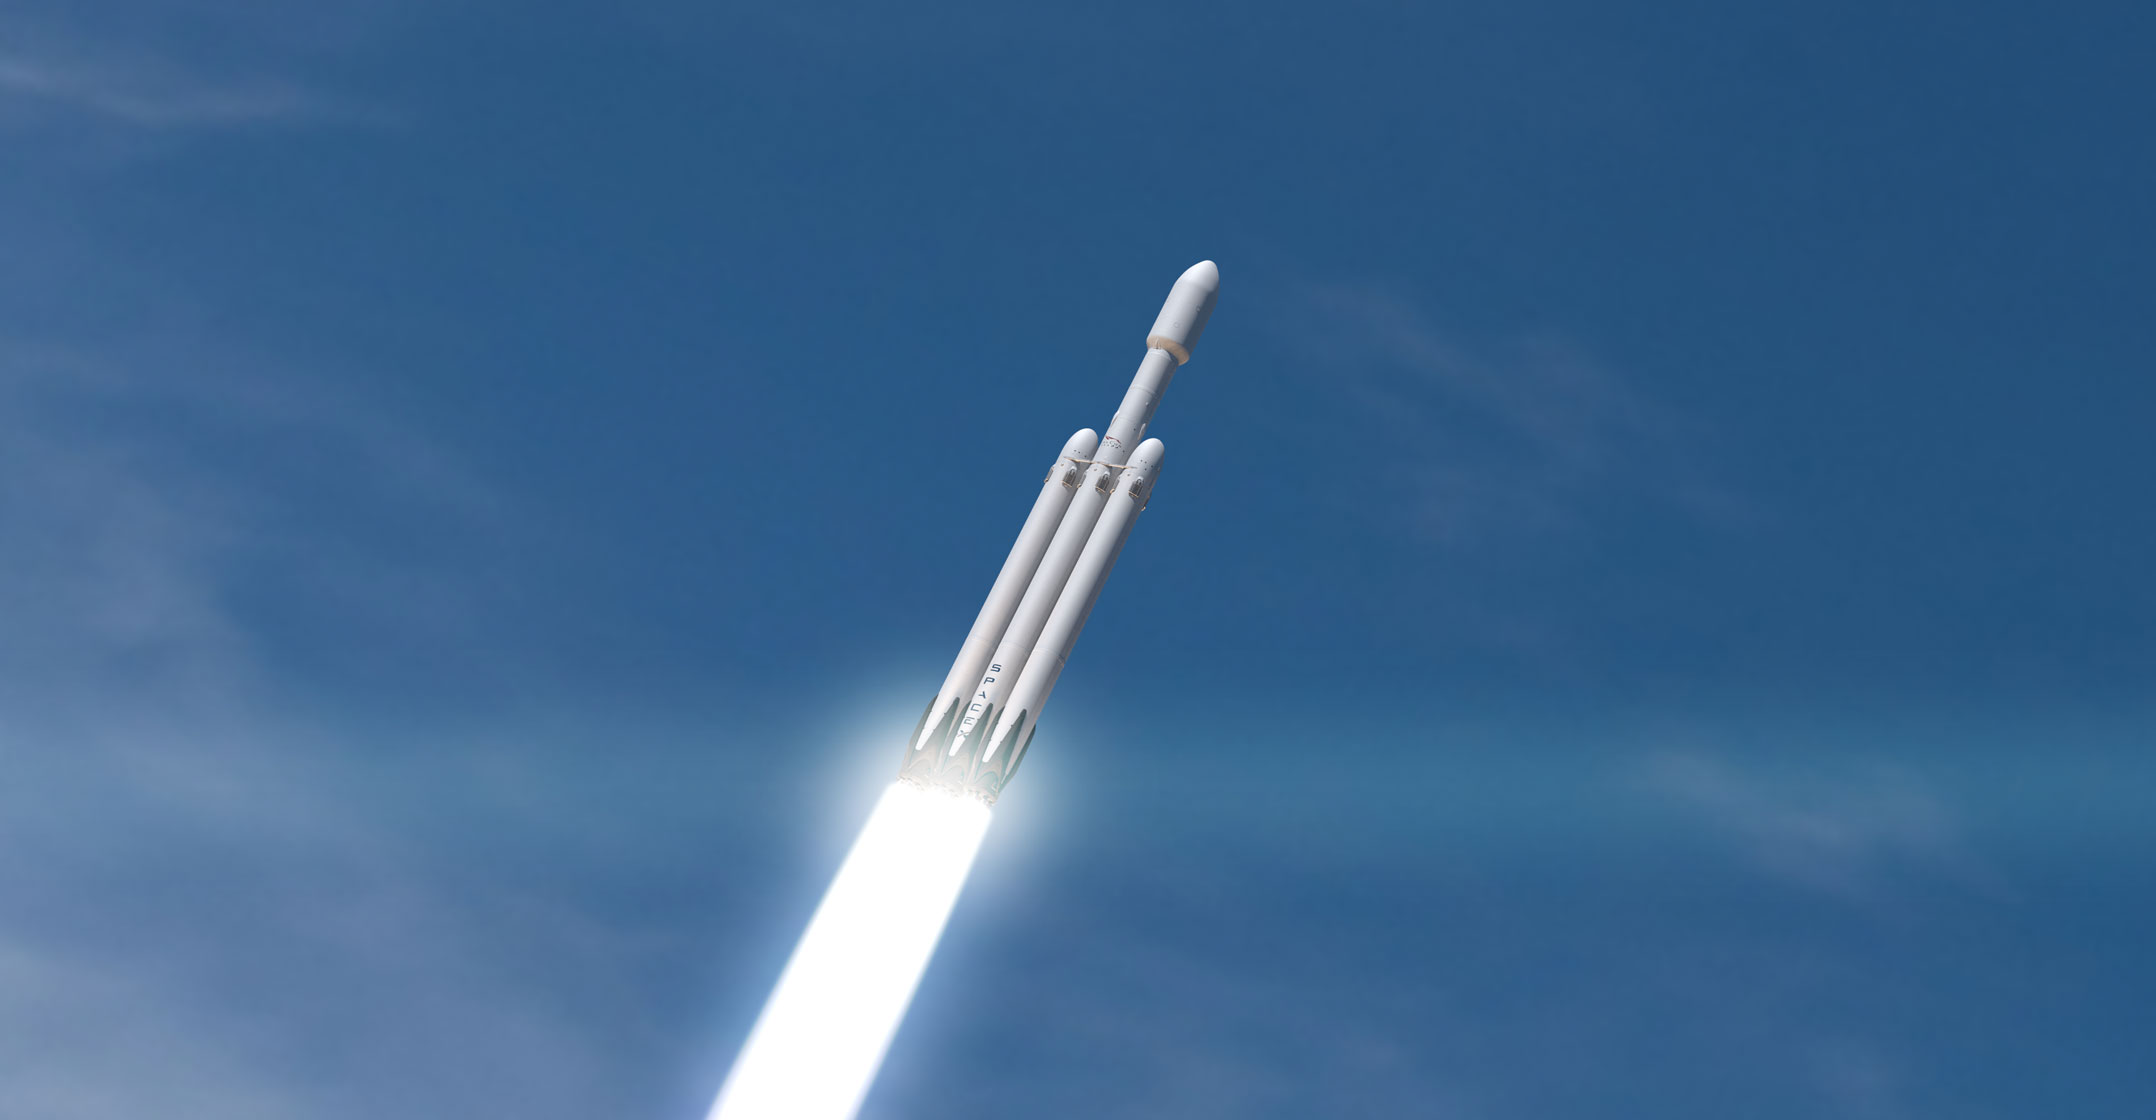 spacex falcon heavy launch - photo #24